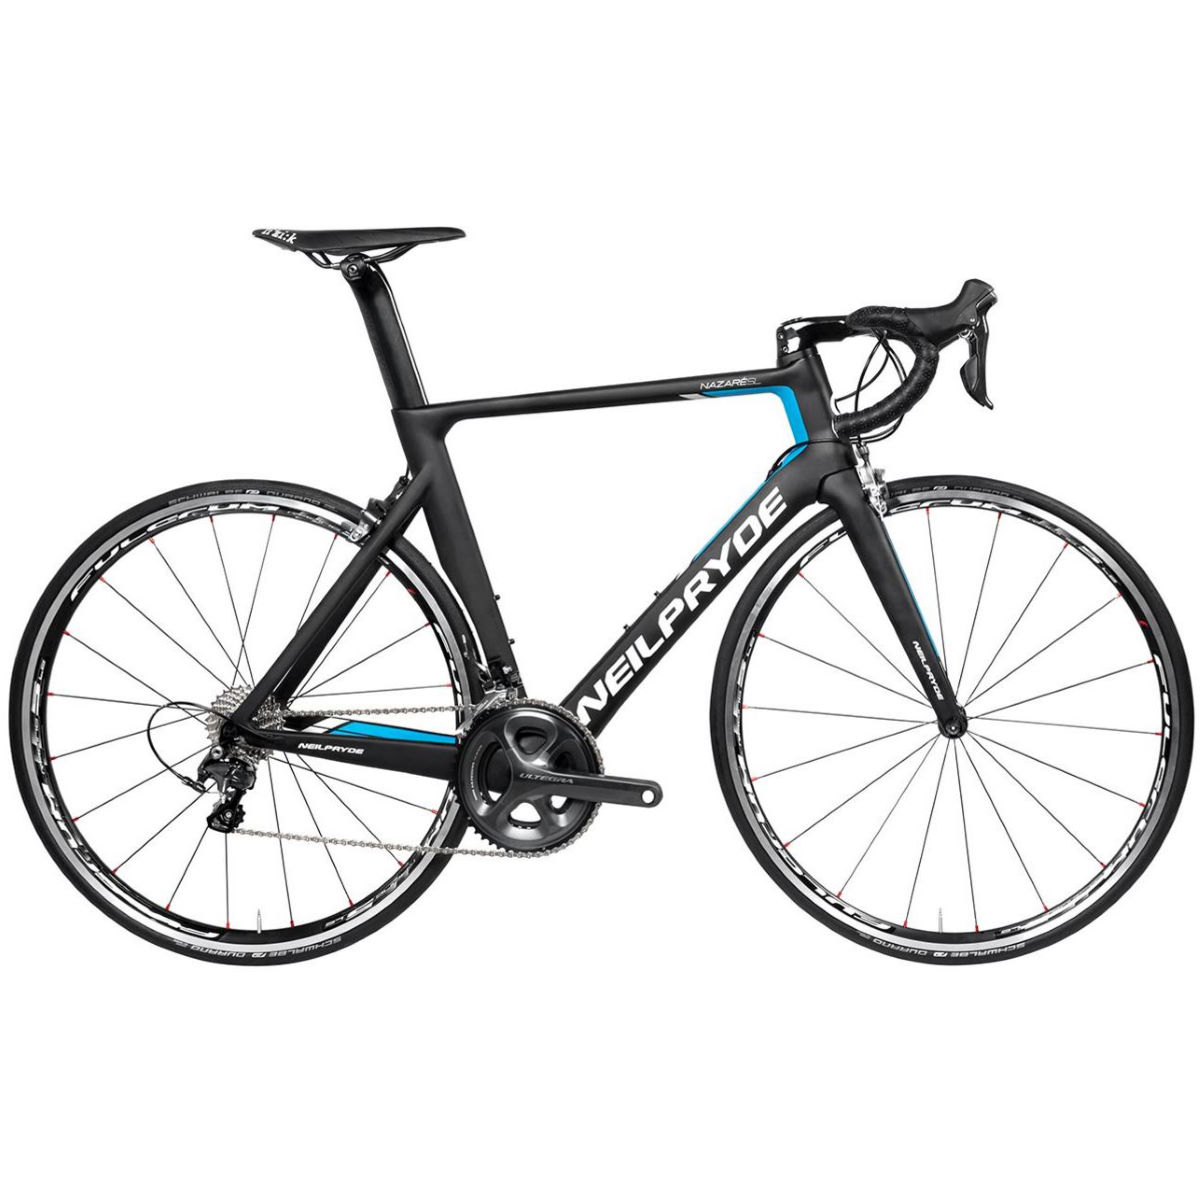 Vélo de route NeilPryde Nazare SL (Ultegra, 2017) - Medium Stock Bike